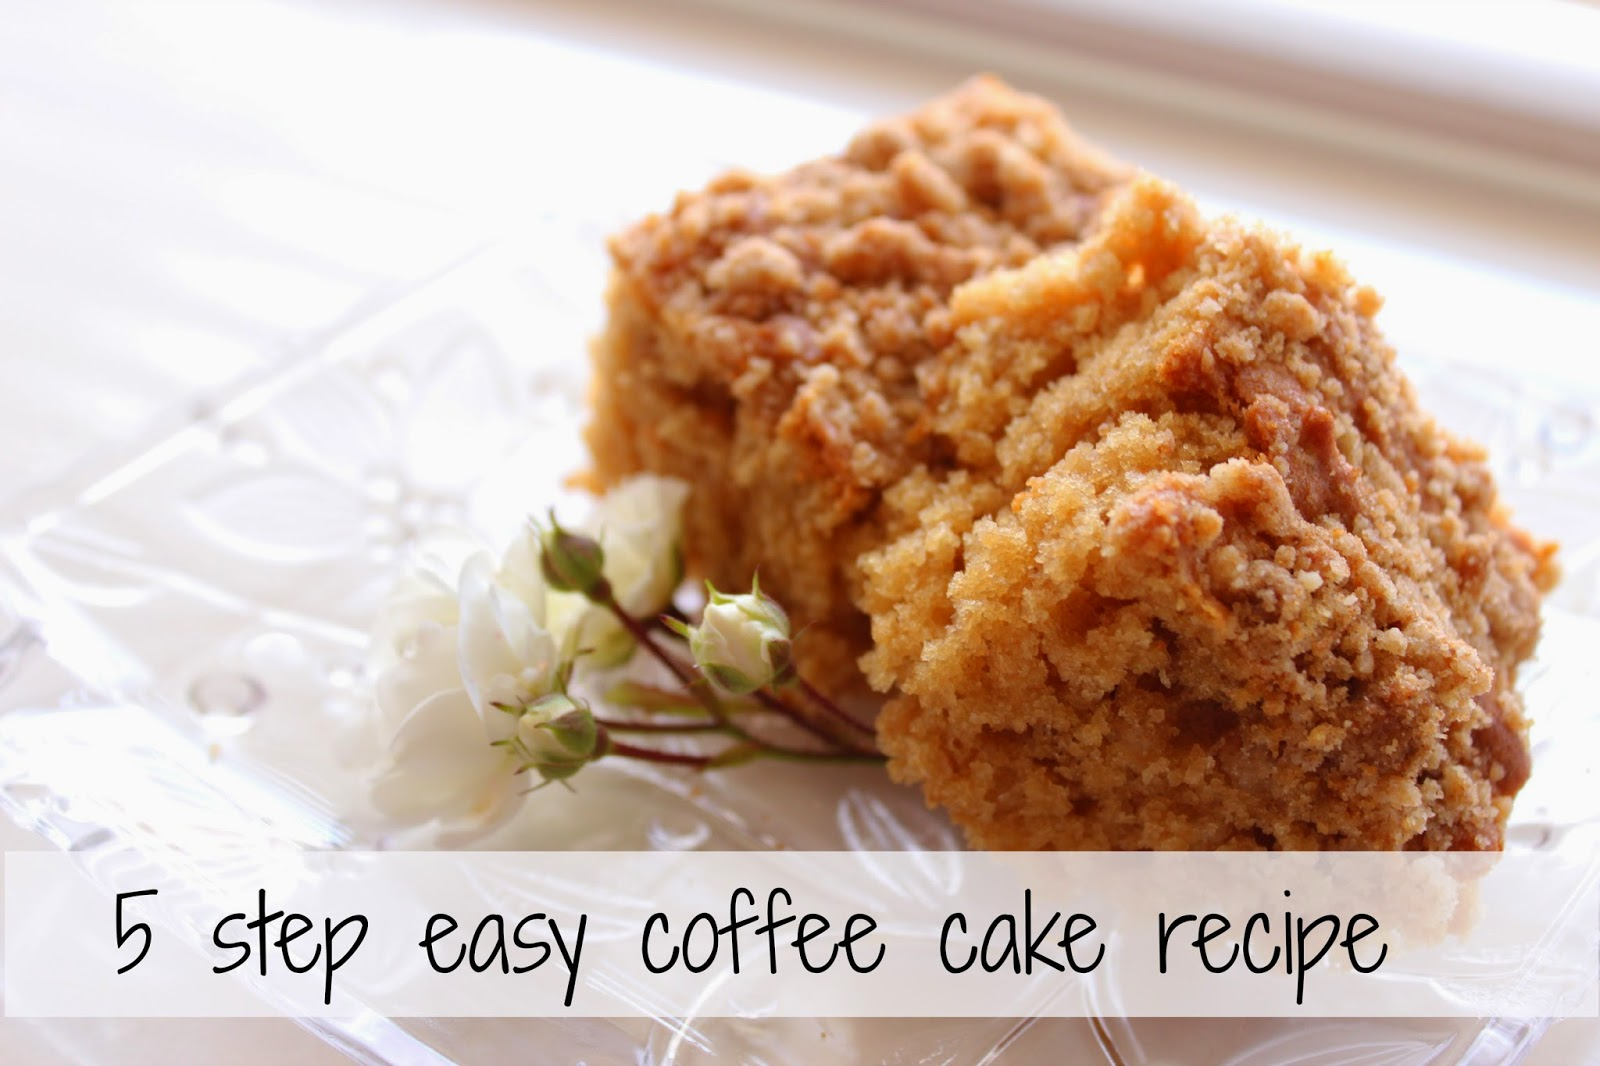 Easy Coffee Cake Recipe With Cake Mix